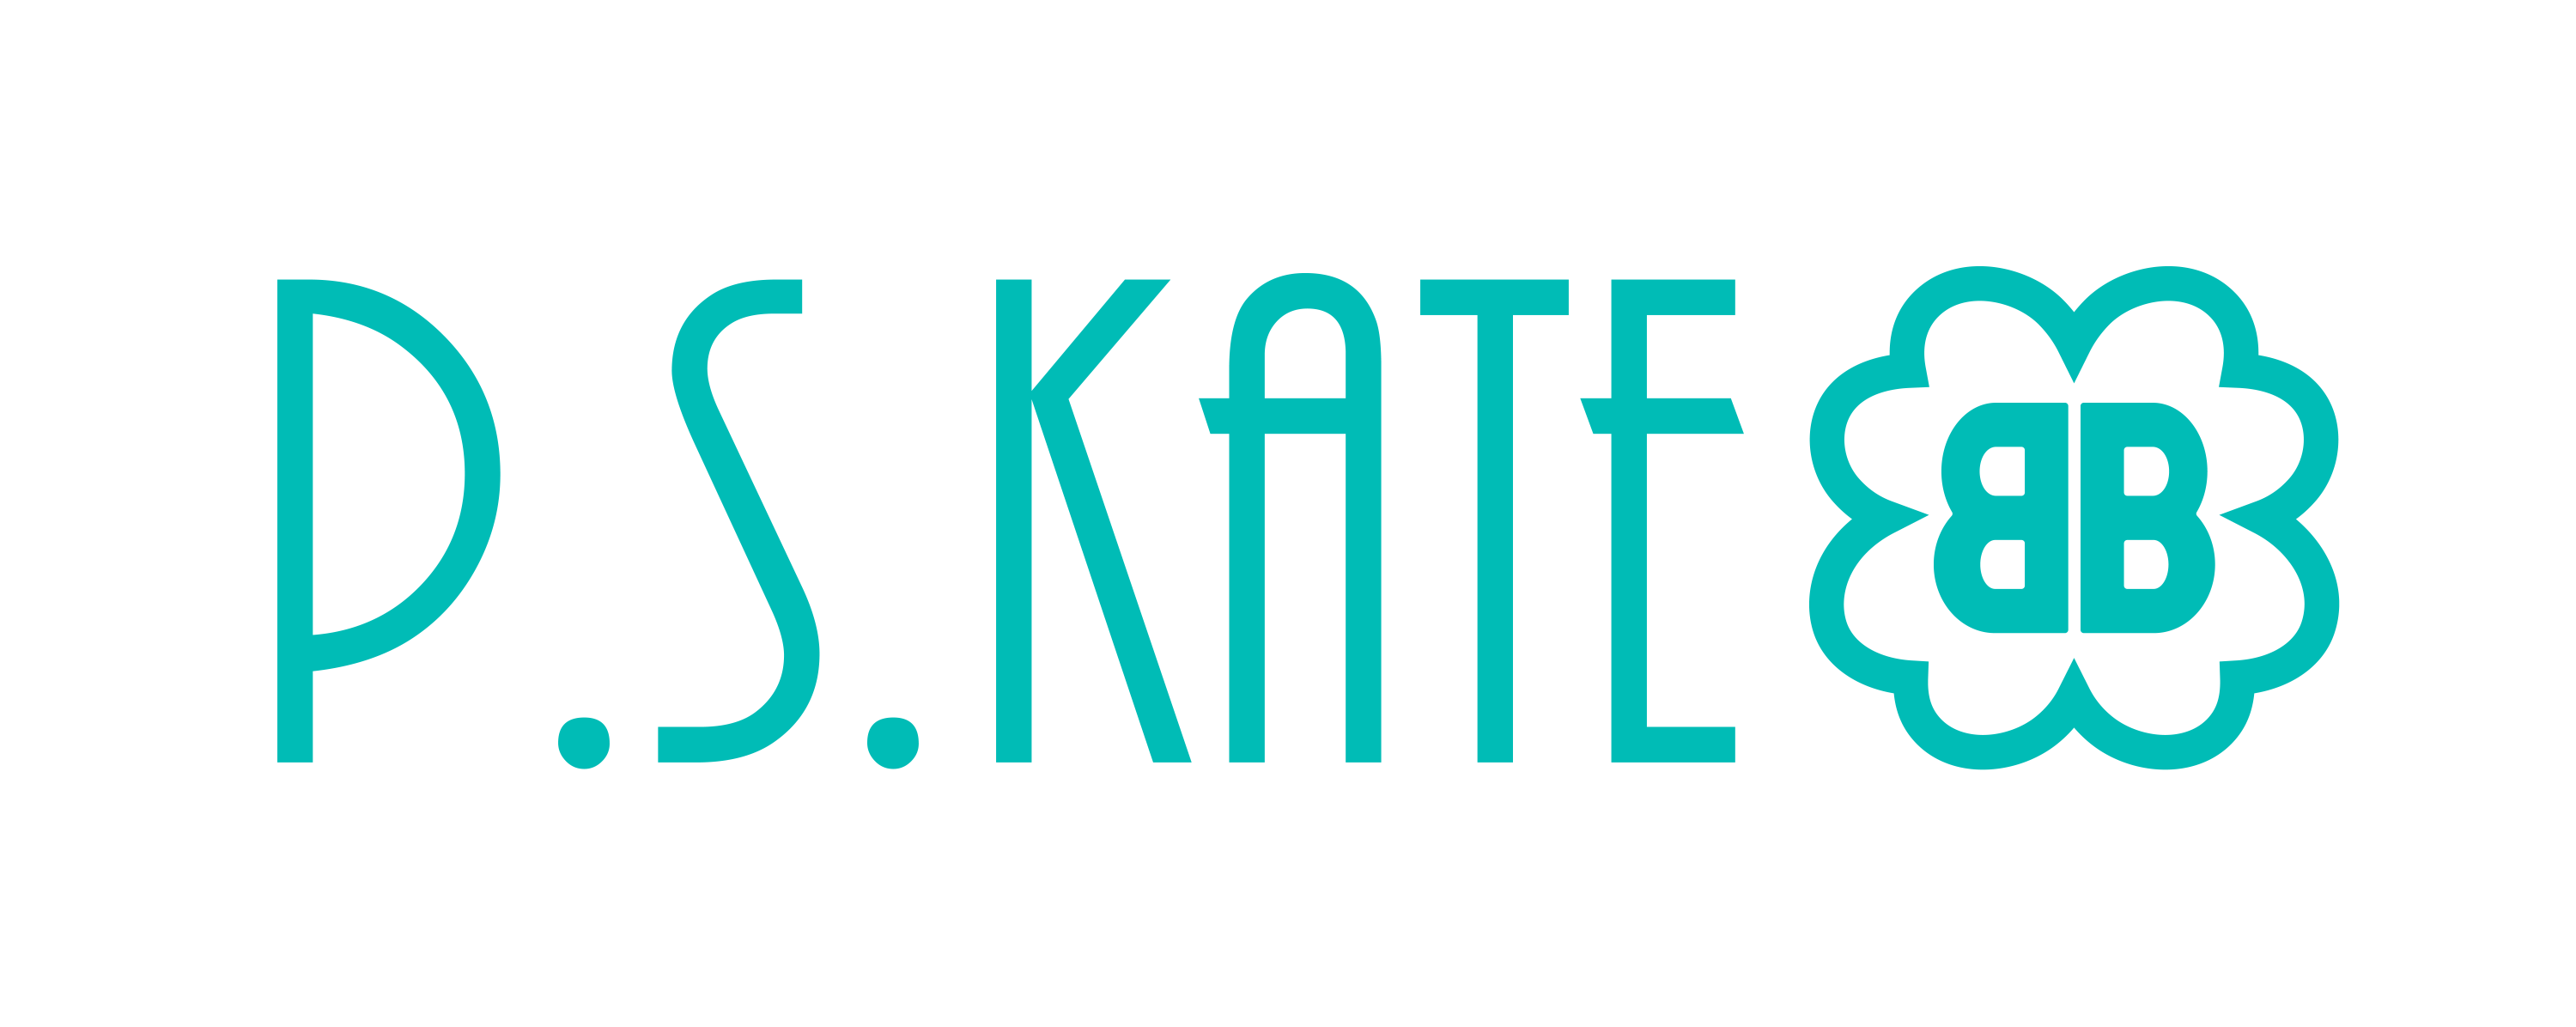 P.S. Kate